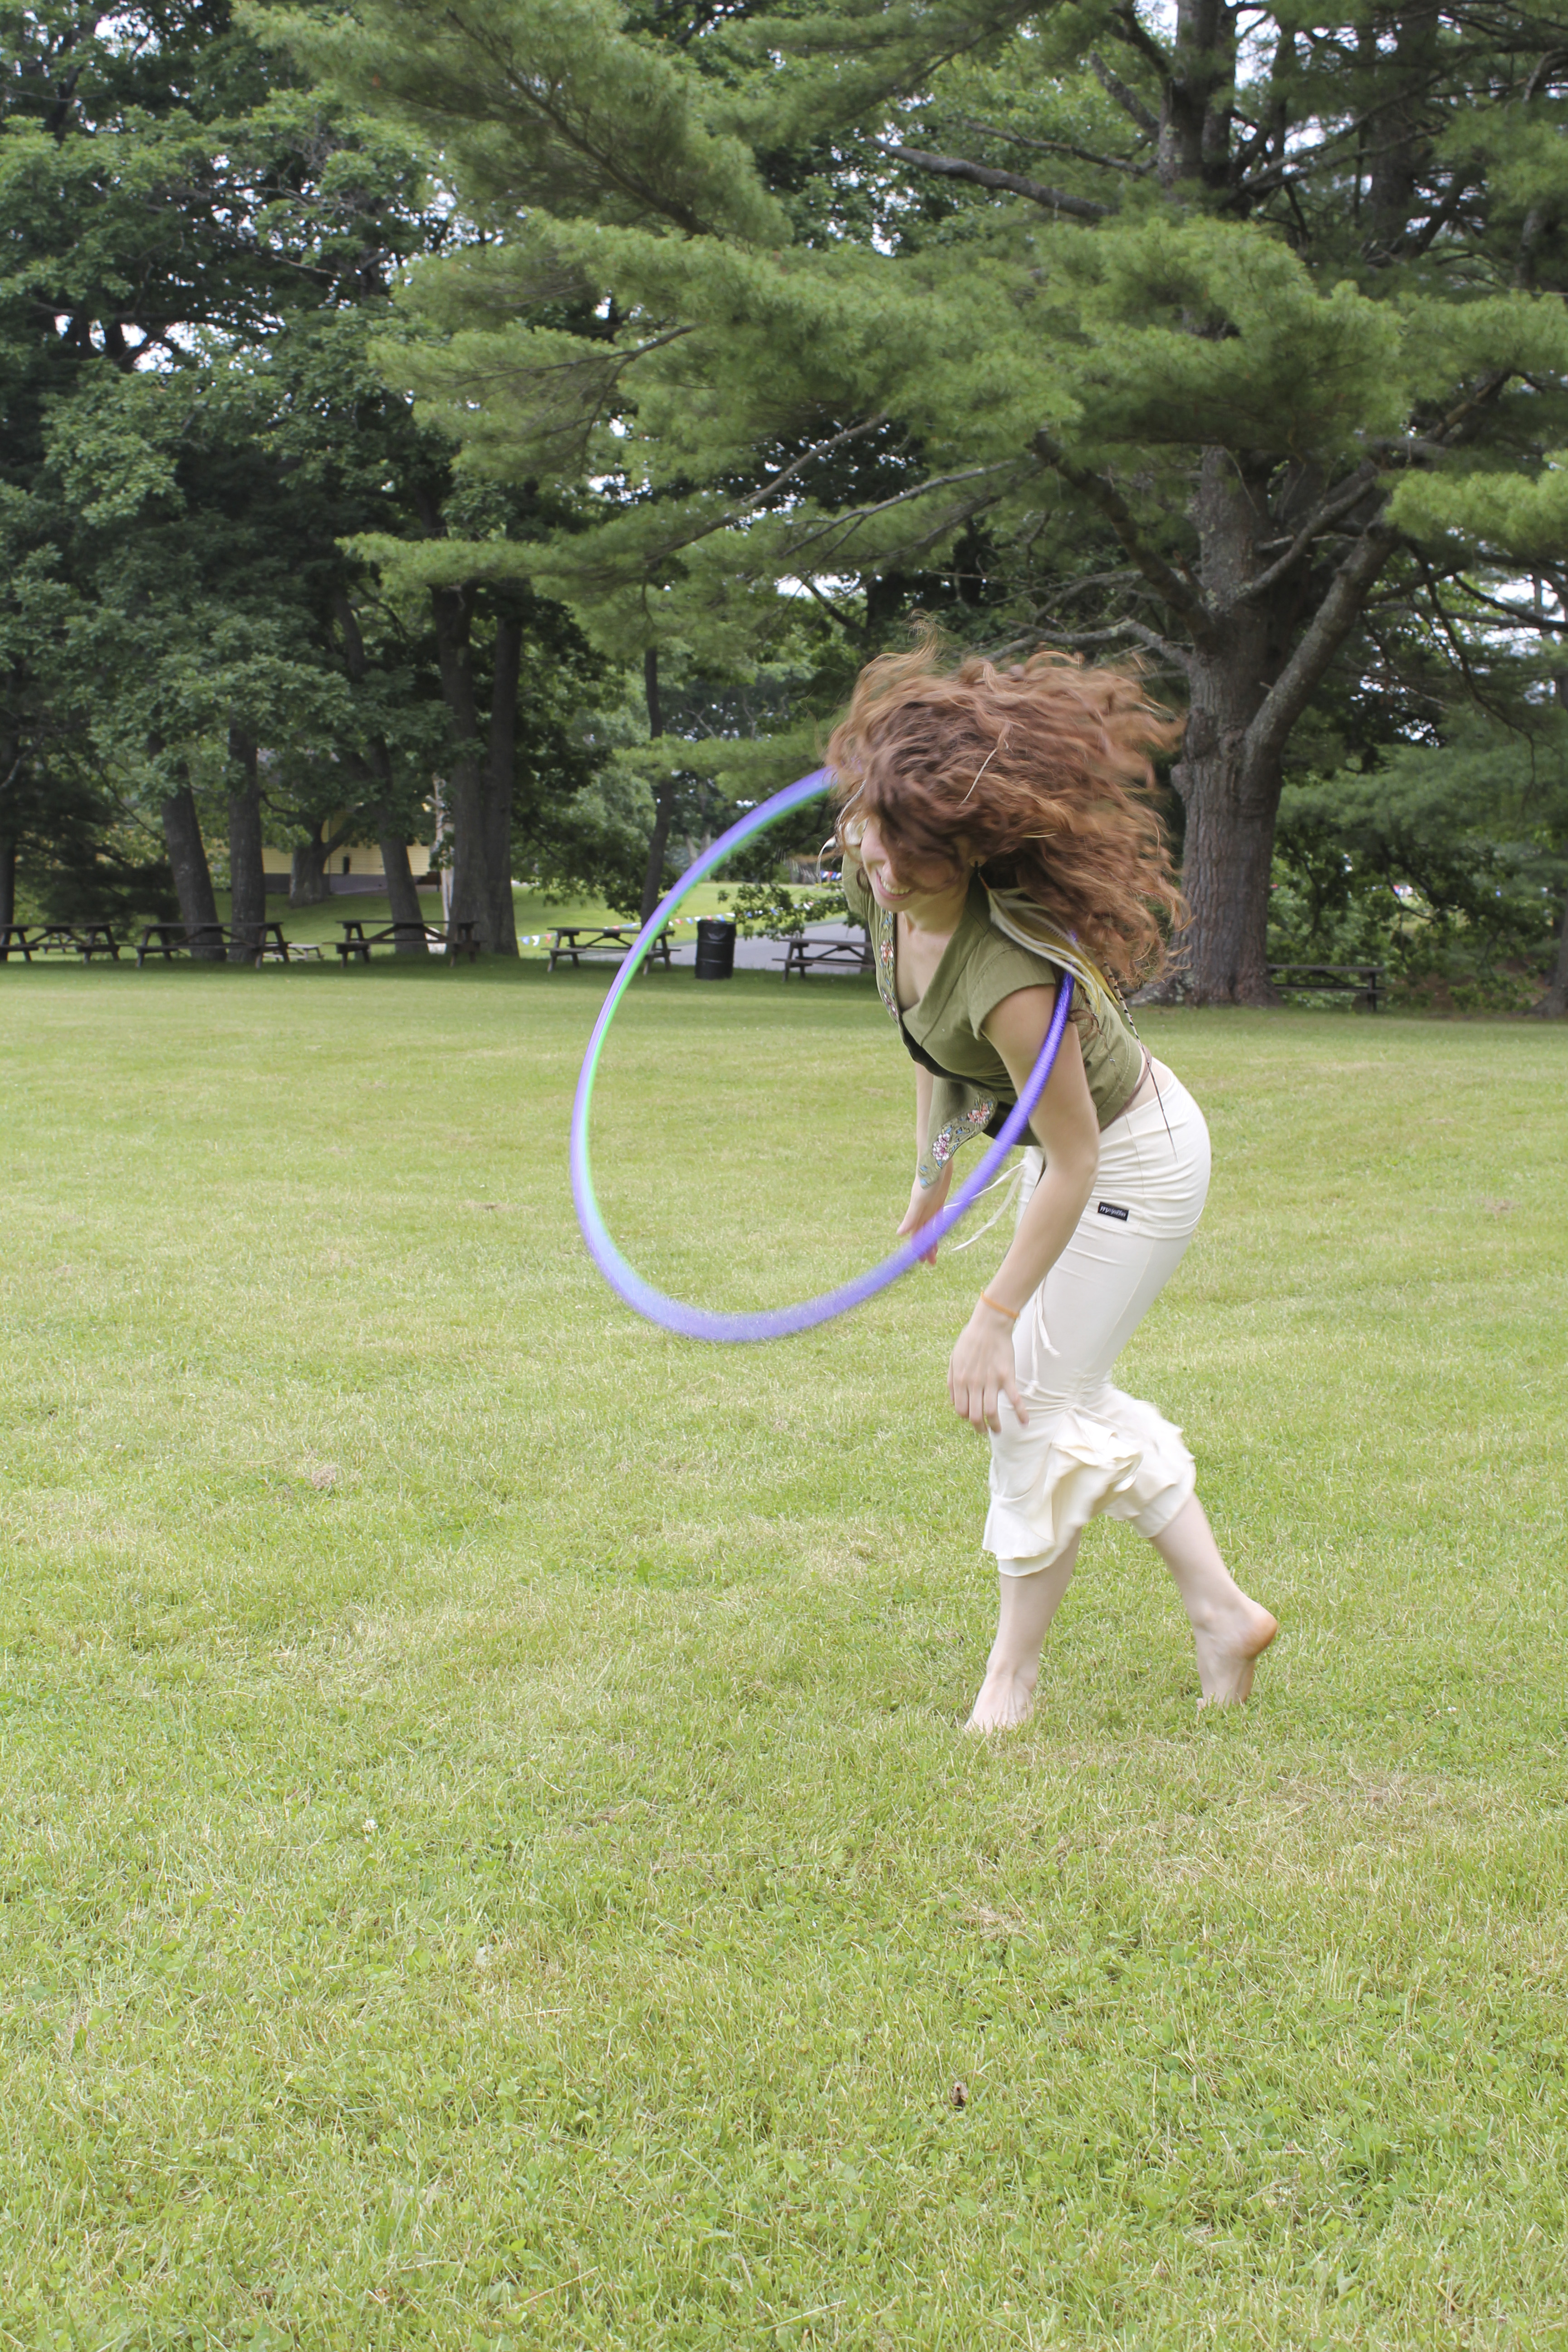 Professional hooper Lolli Hoops, 28, of Boston, twirled her hula hoop around her Friday during HoopFest New England, where she is leading workshops. The festival is the first of its kind in the nation, spurred by a national trend of hooping for fun and exercise.